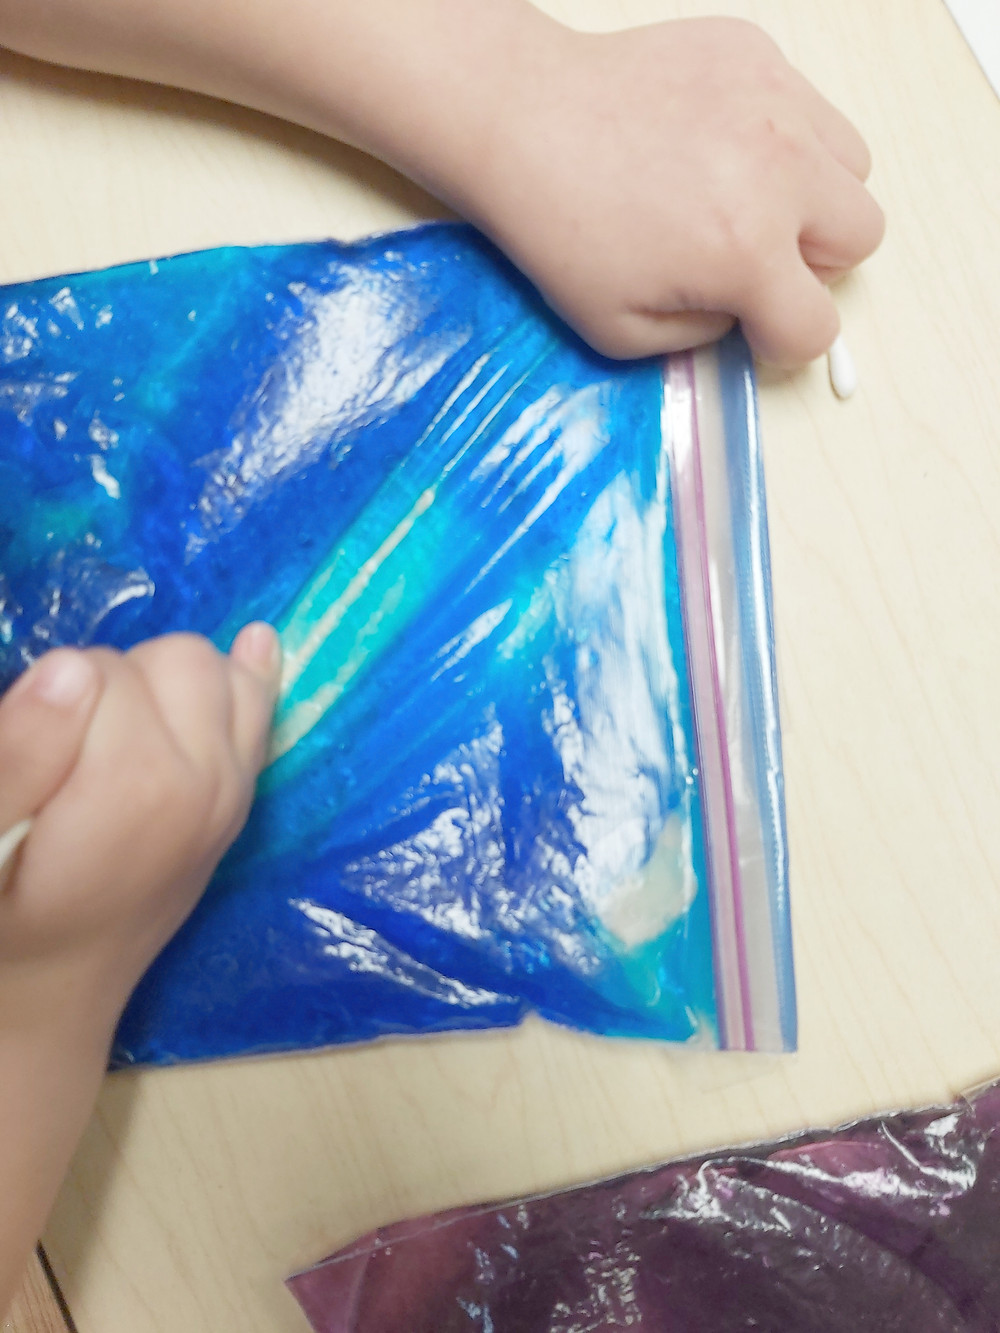 preschooler writing letters with q-tip